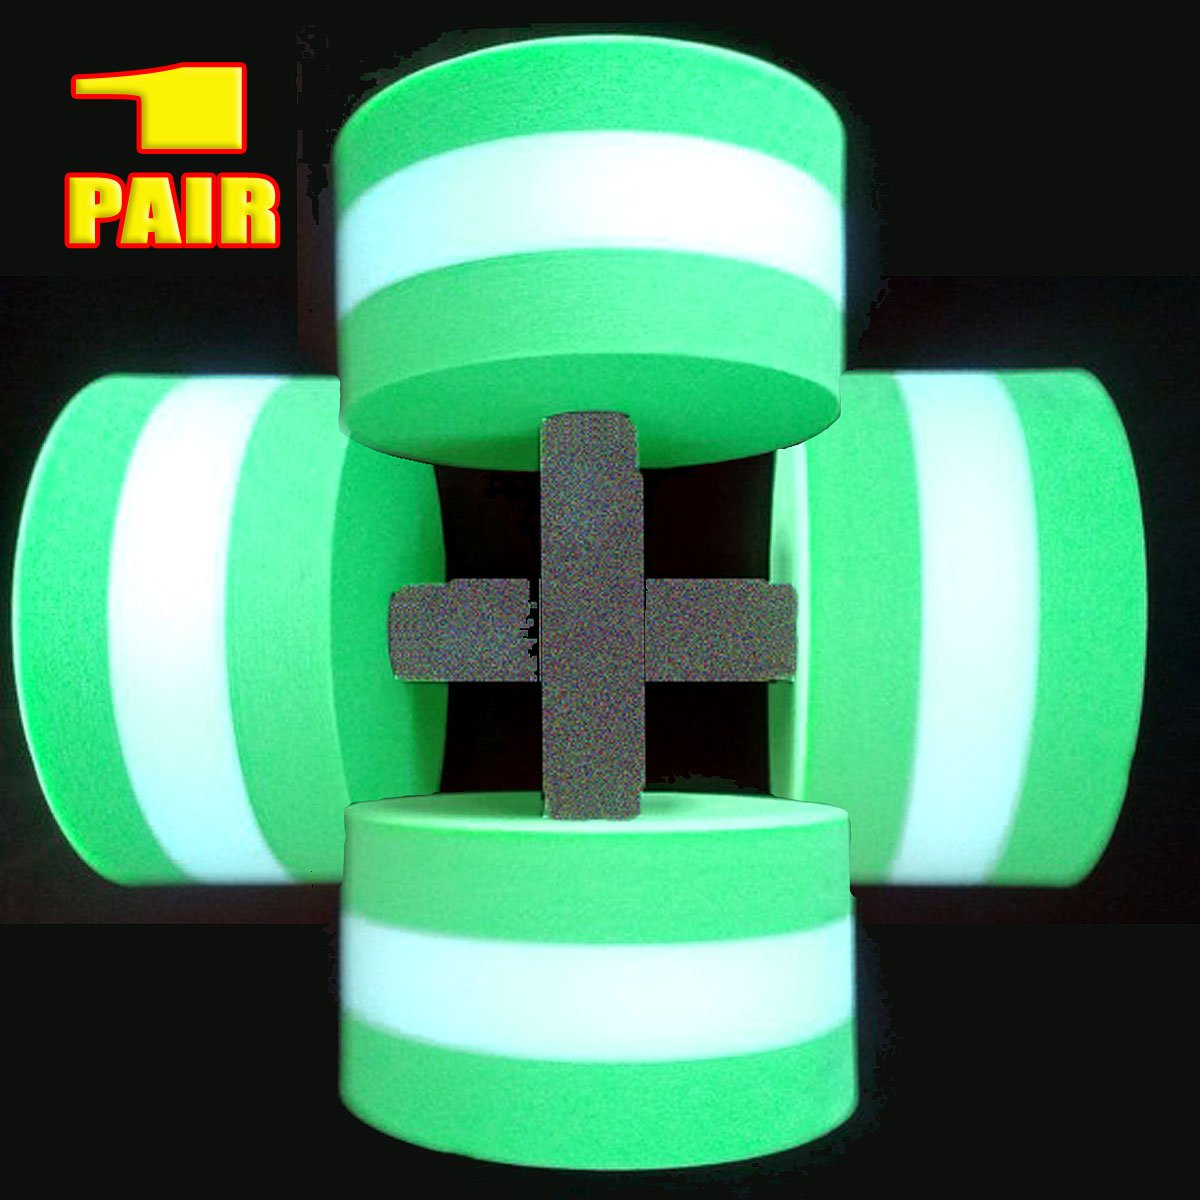 VERISA Water Aerobic Exercise Foam Dumbbells Pool Resistance 1 Pair, Water Fitness Exercises Equipment for Weight Loss- 1 Pair - 3 Colors Available (GREEN)